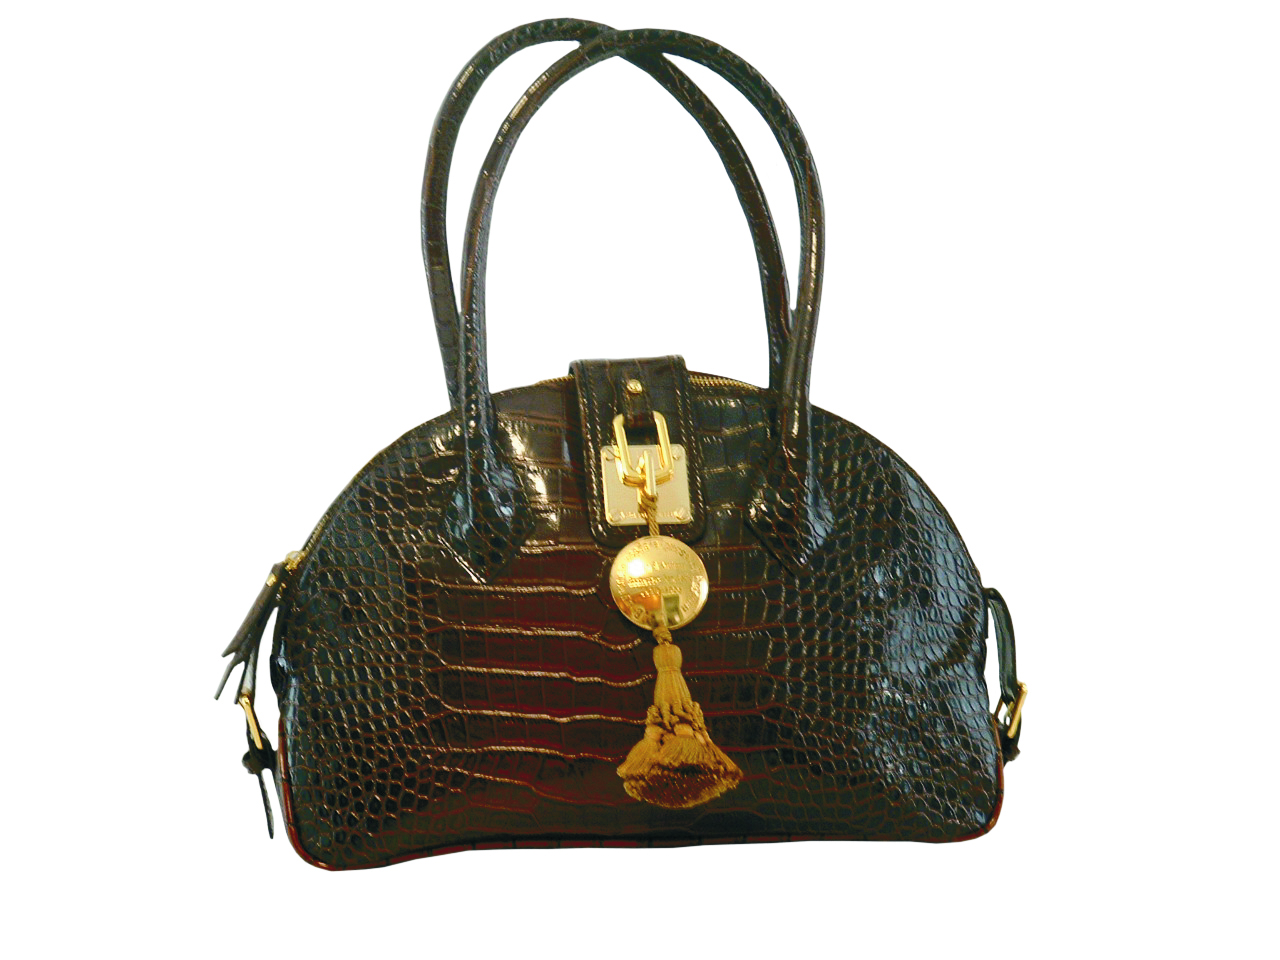 Purse with a Purpose – National Susan B. Anthony Museum & House